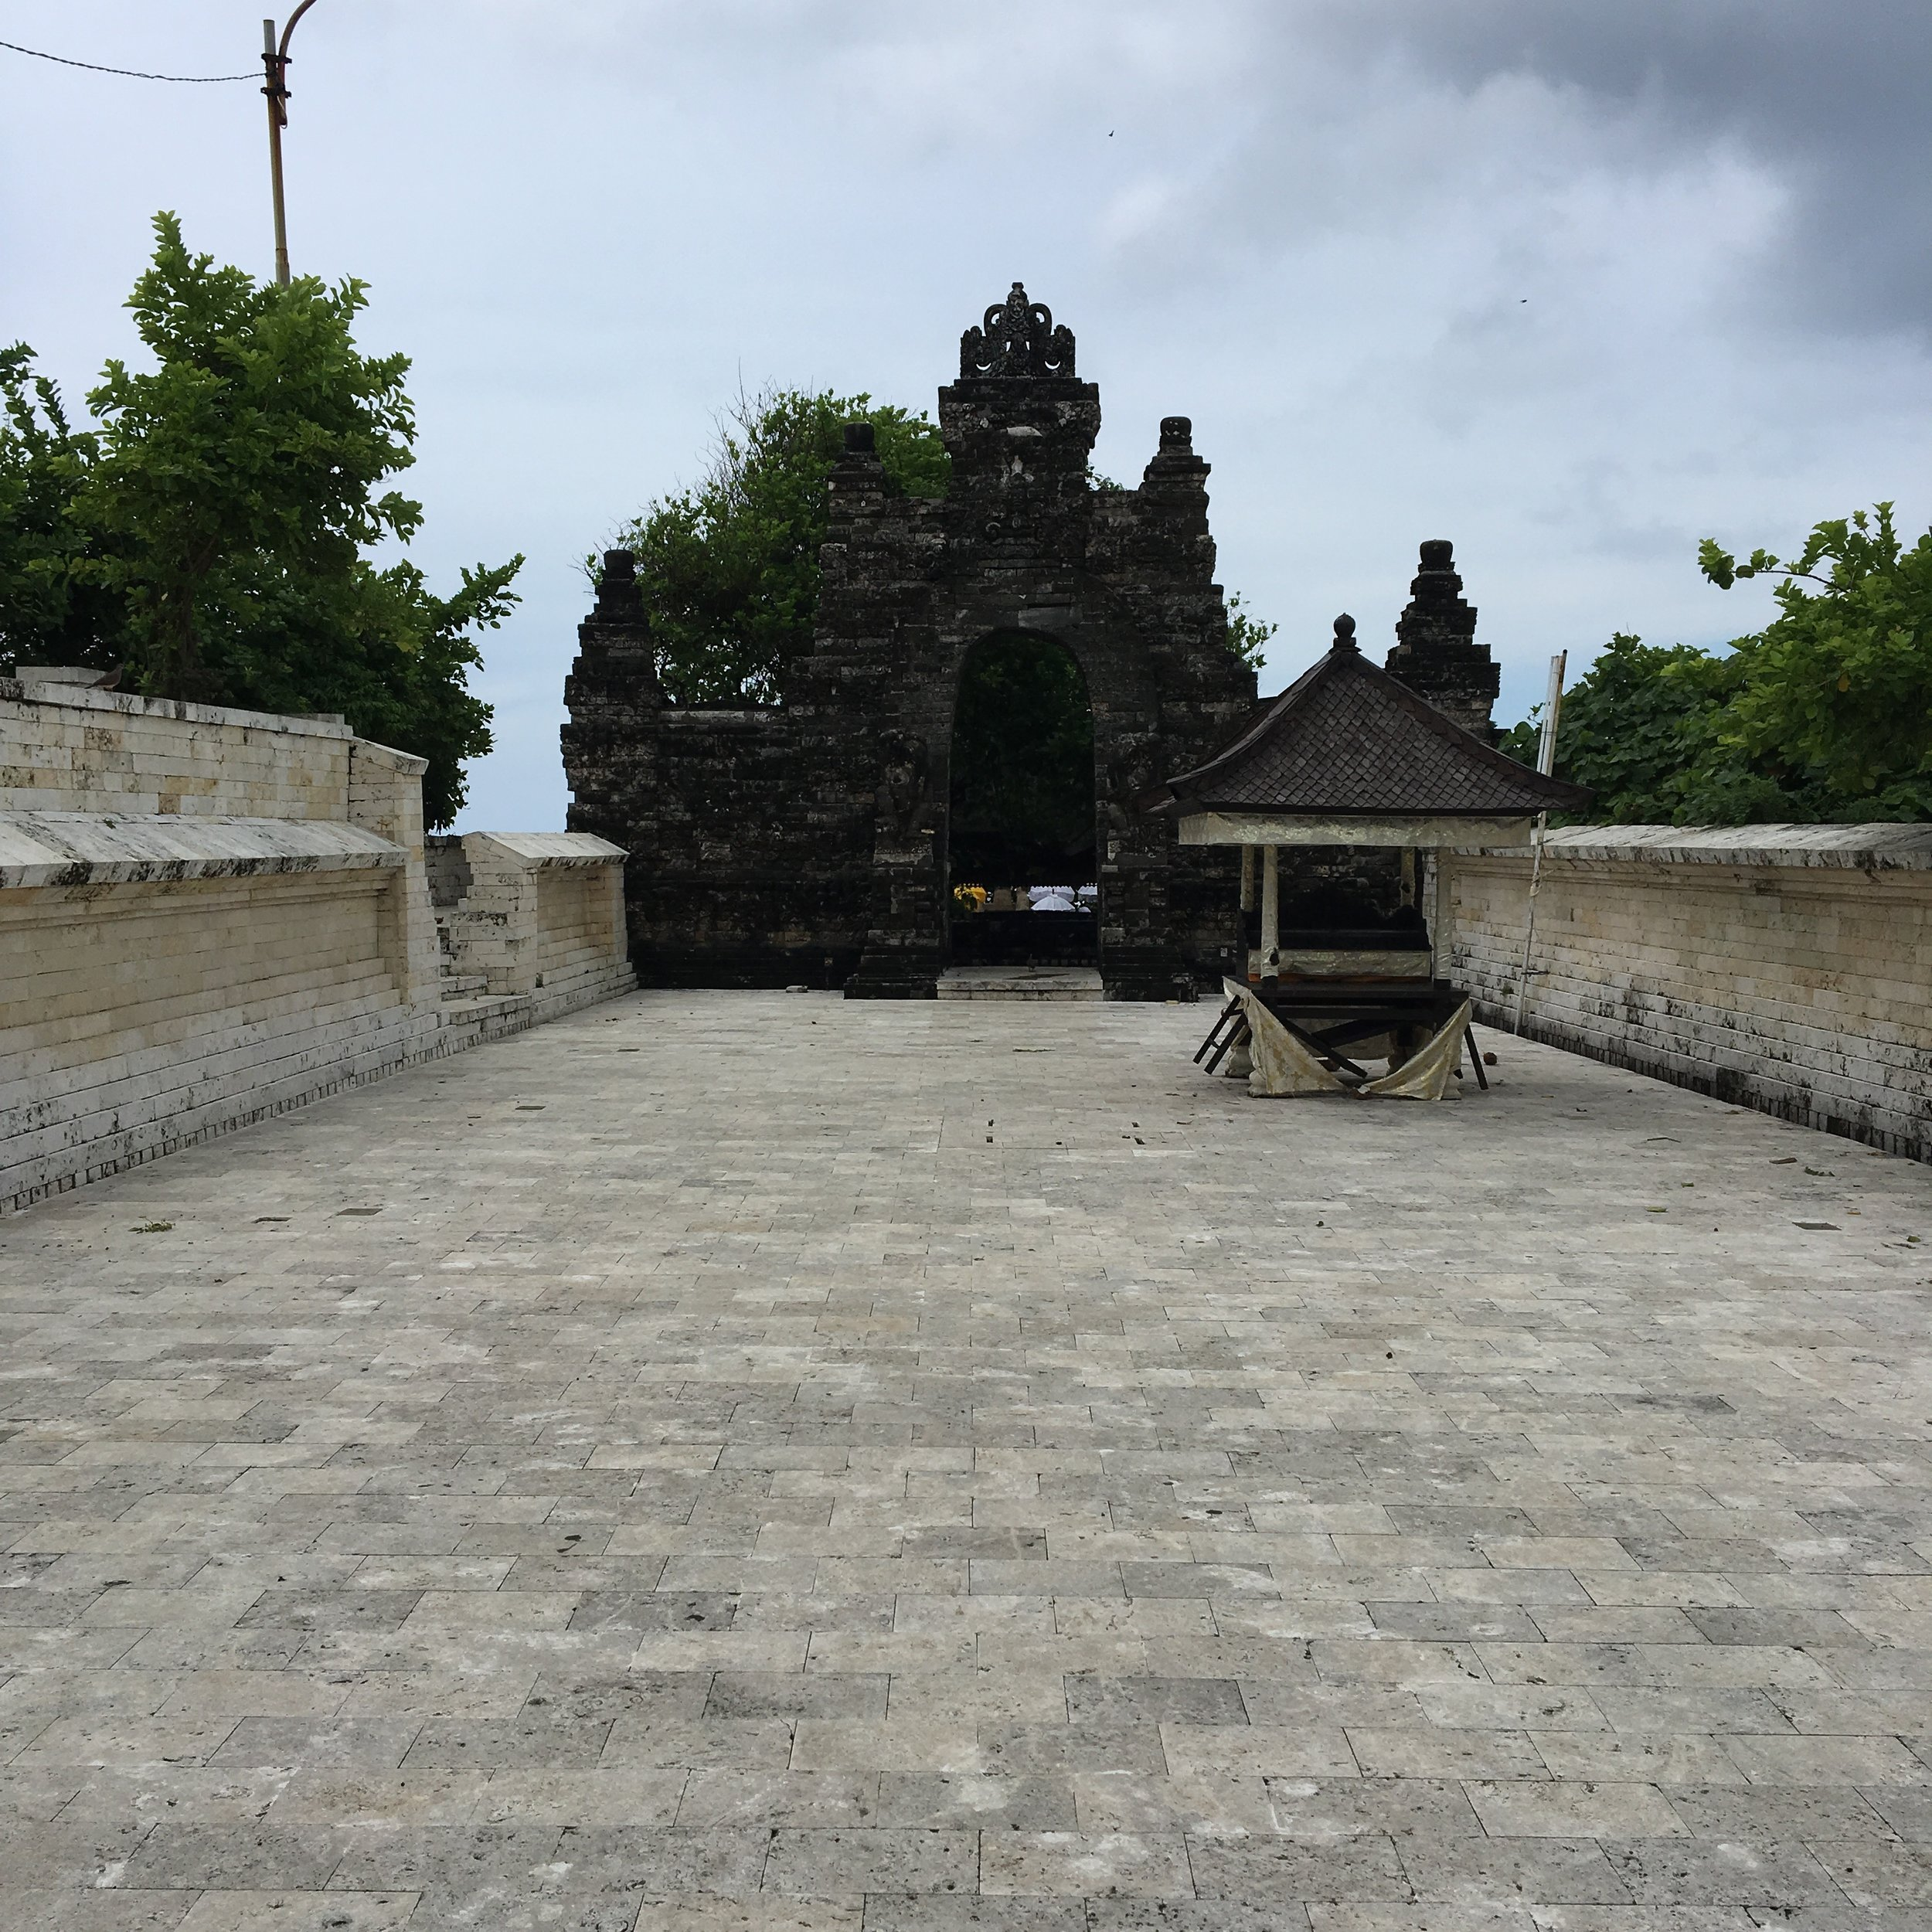 This is the courtyard that led to the shrine. I did not take pictures of the shrine because it felt too sacred.